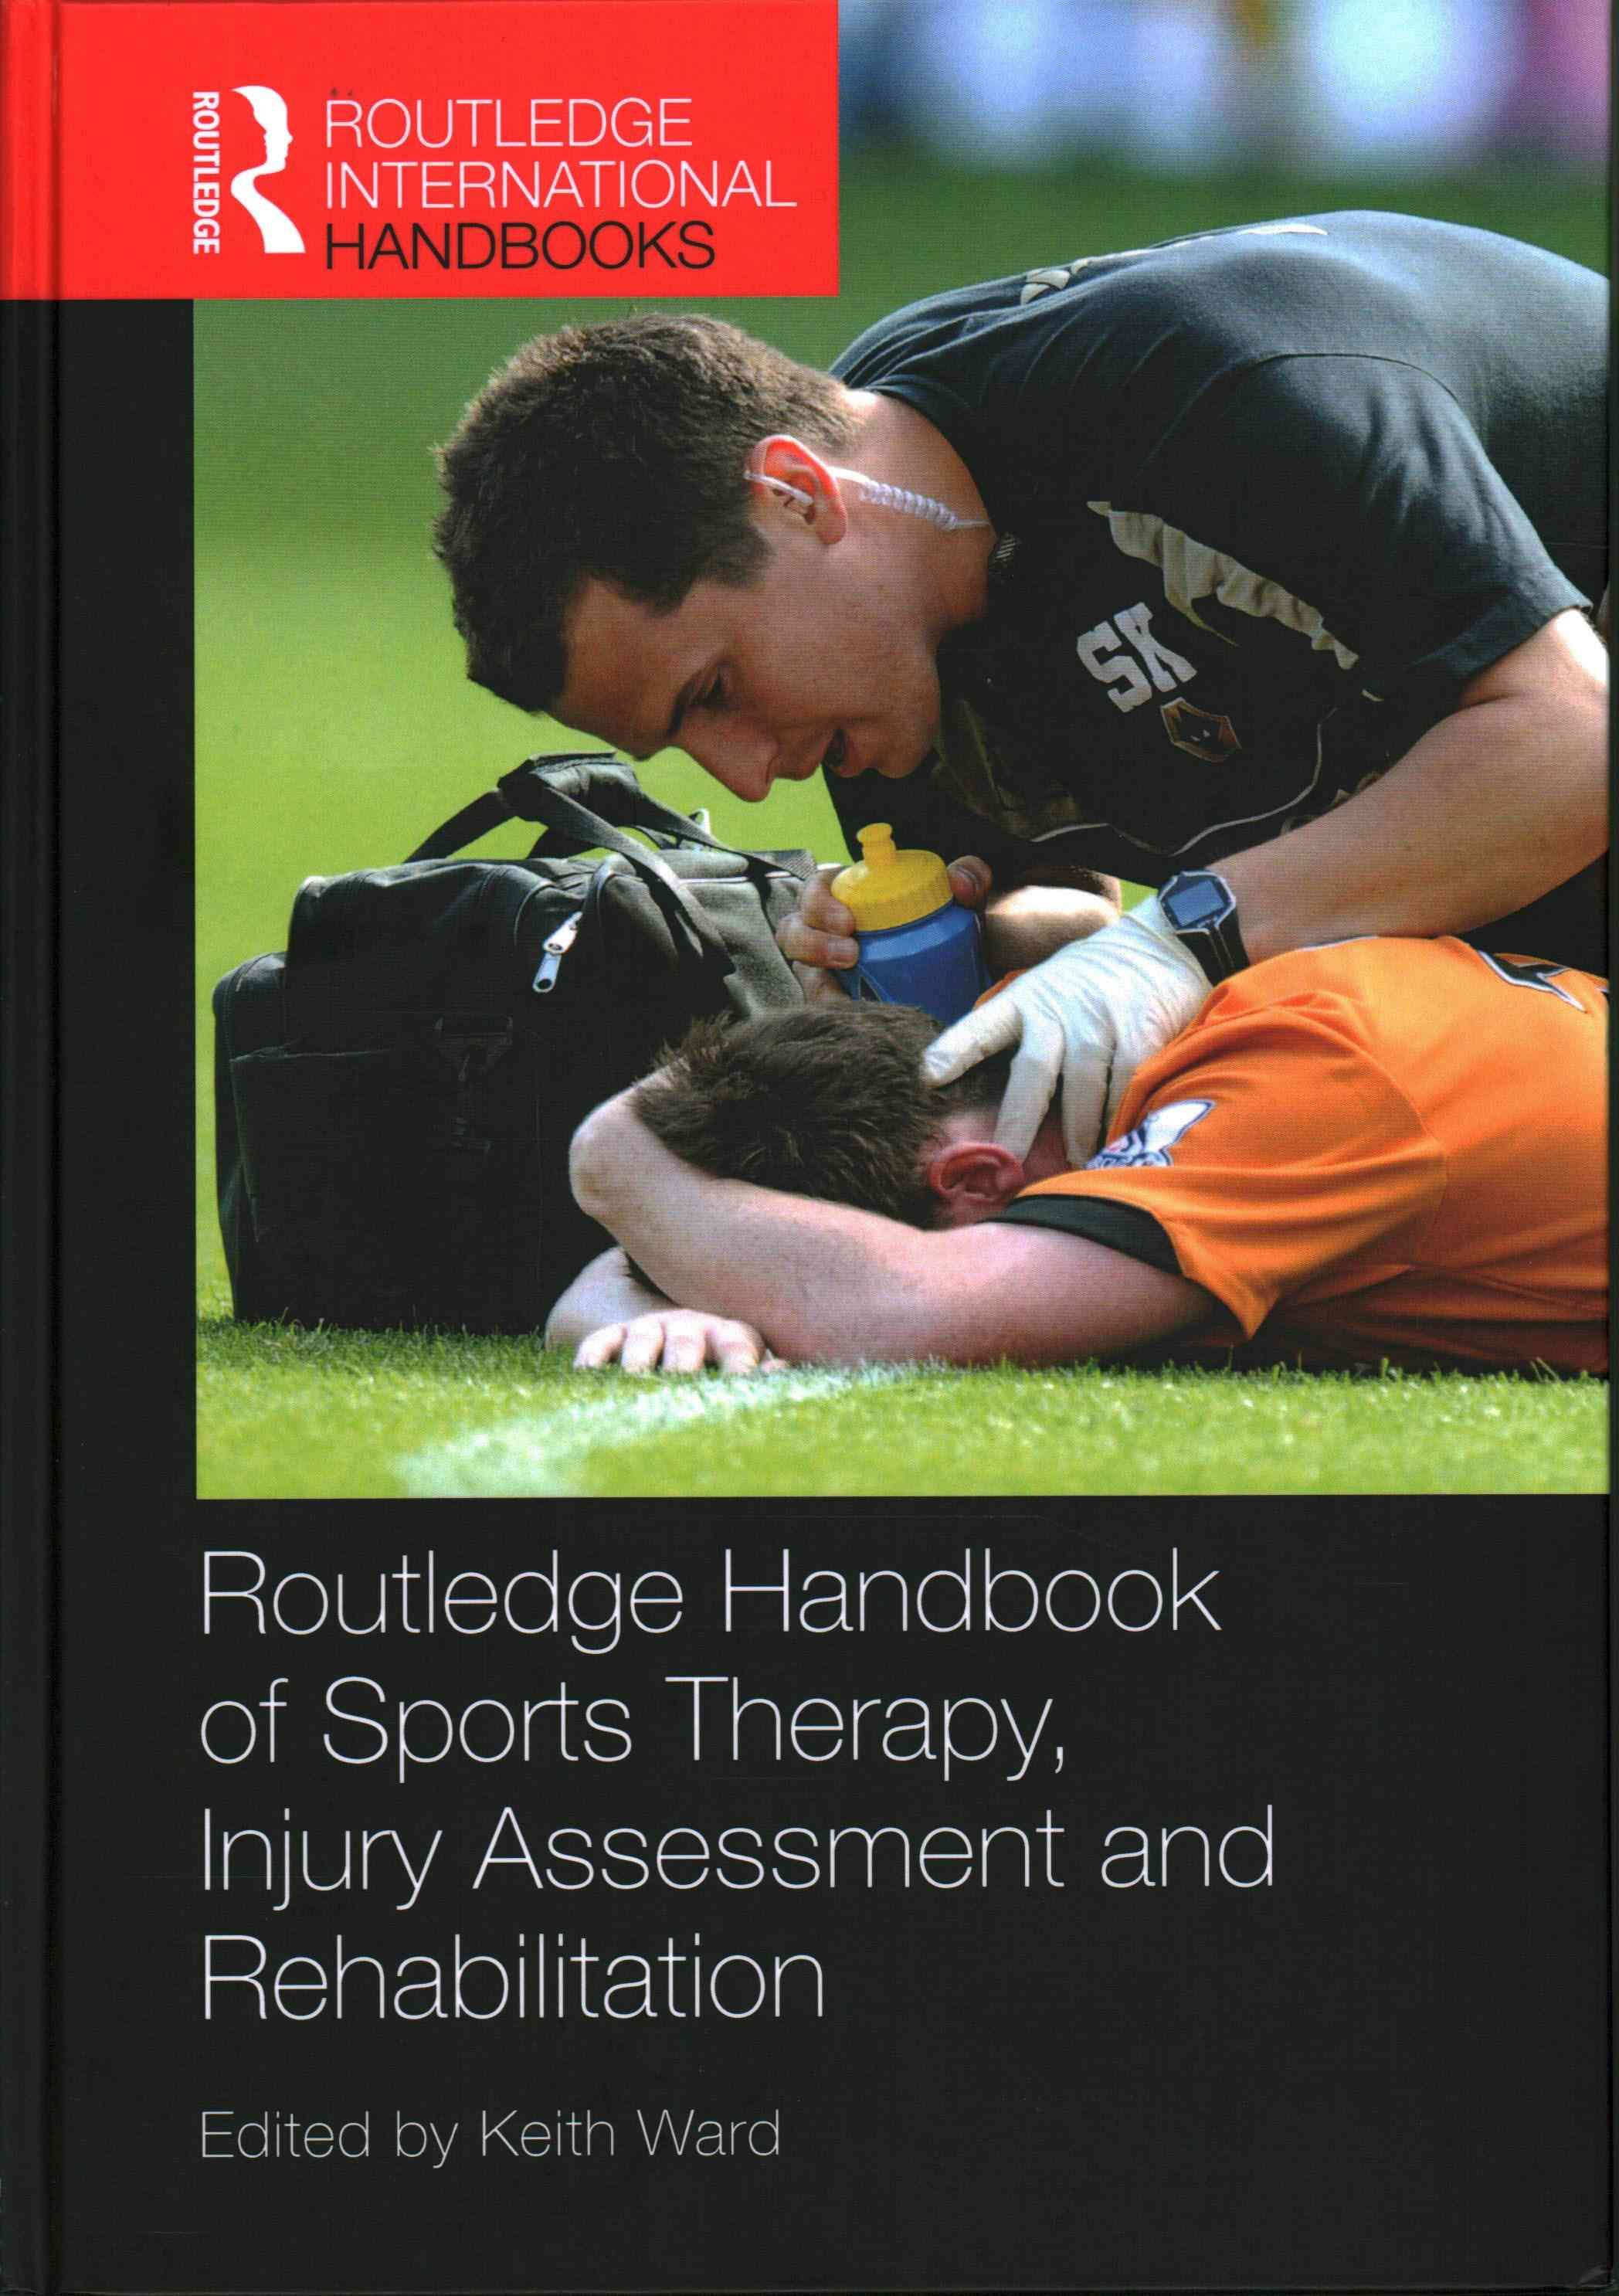 Routledge Handbook of Sports Therapy, Injury Assessment